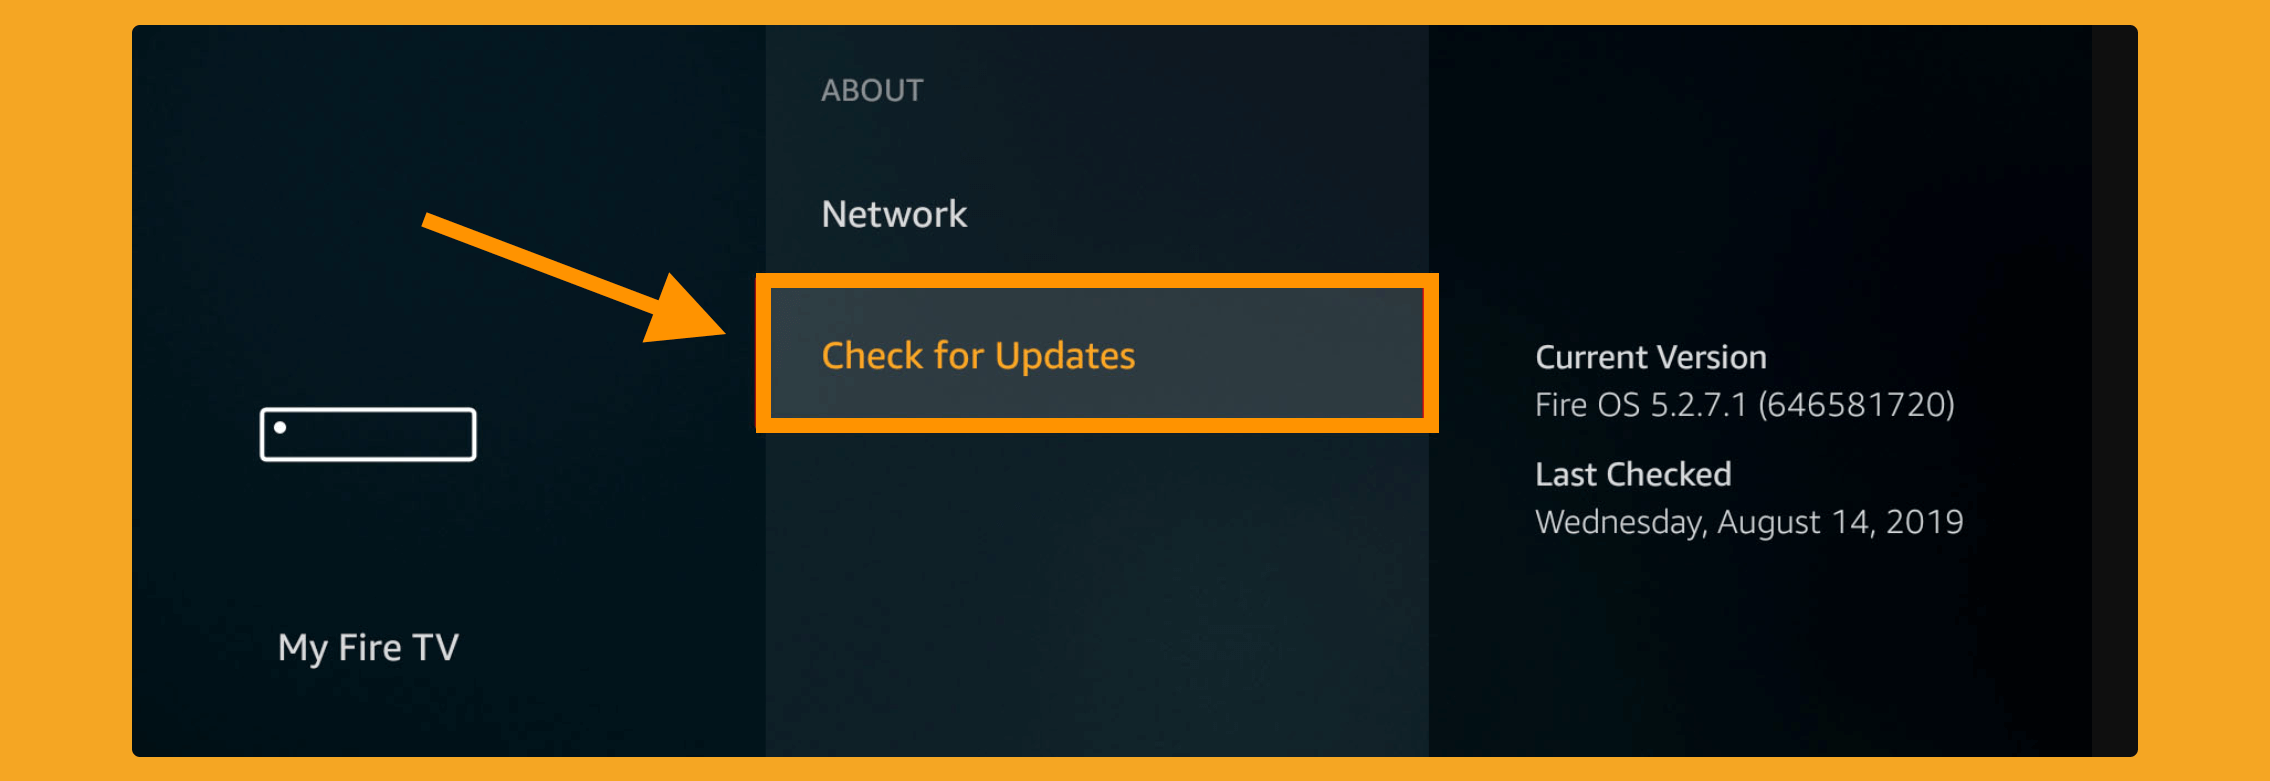 Check-for-updates-to-Fix-Firestick-Keeps-Rebooting